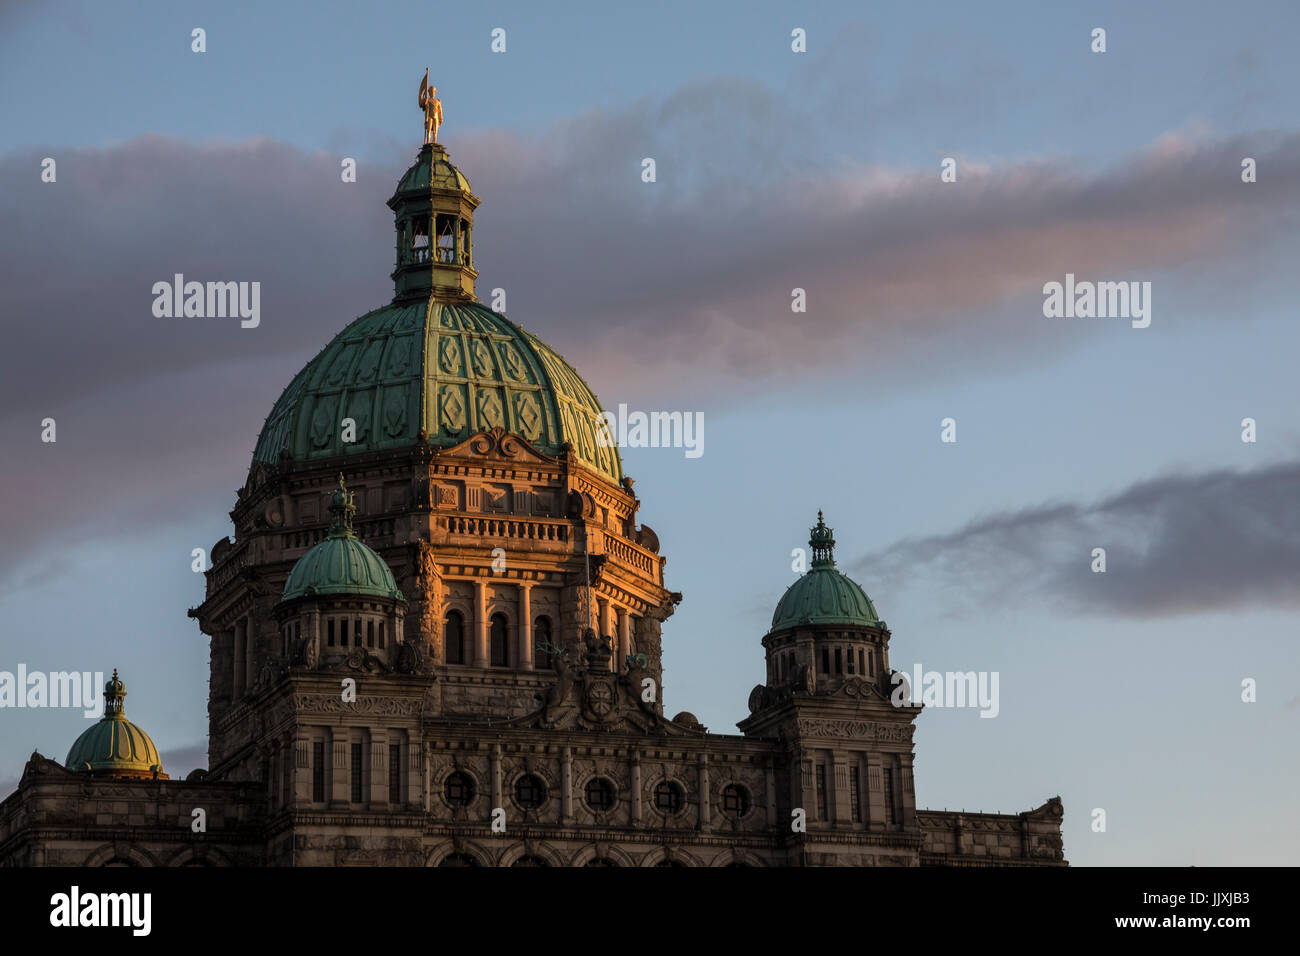 A view of the British Columbia Parliament Buildings at sunset in Victoria, BC, Canada. - Stock Image